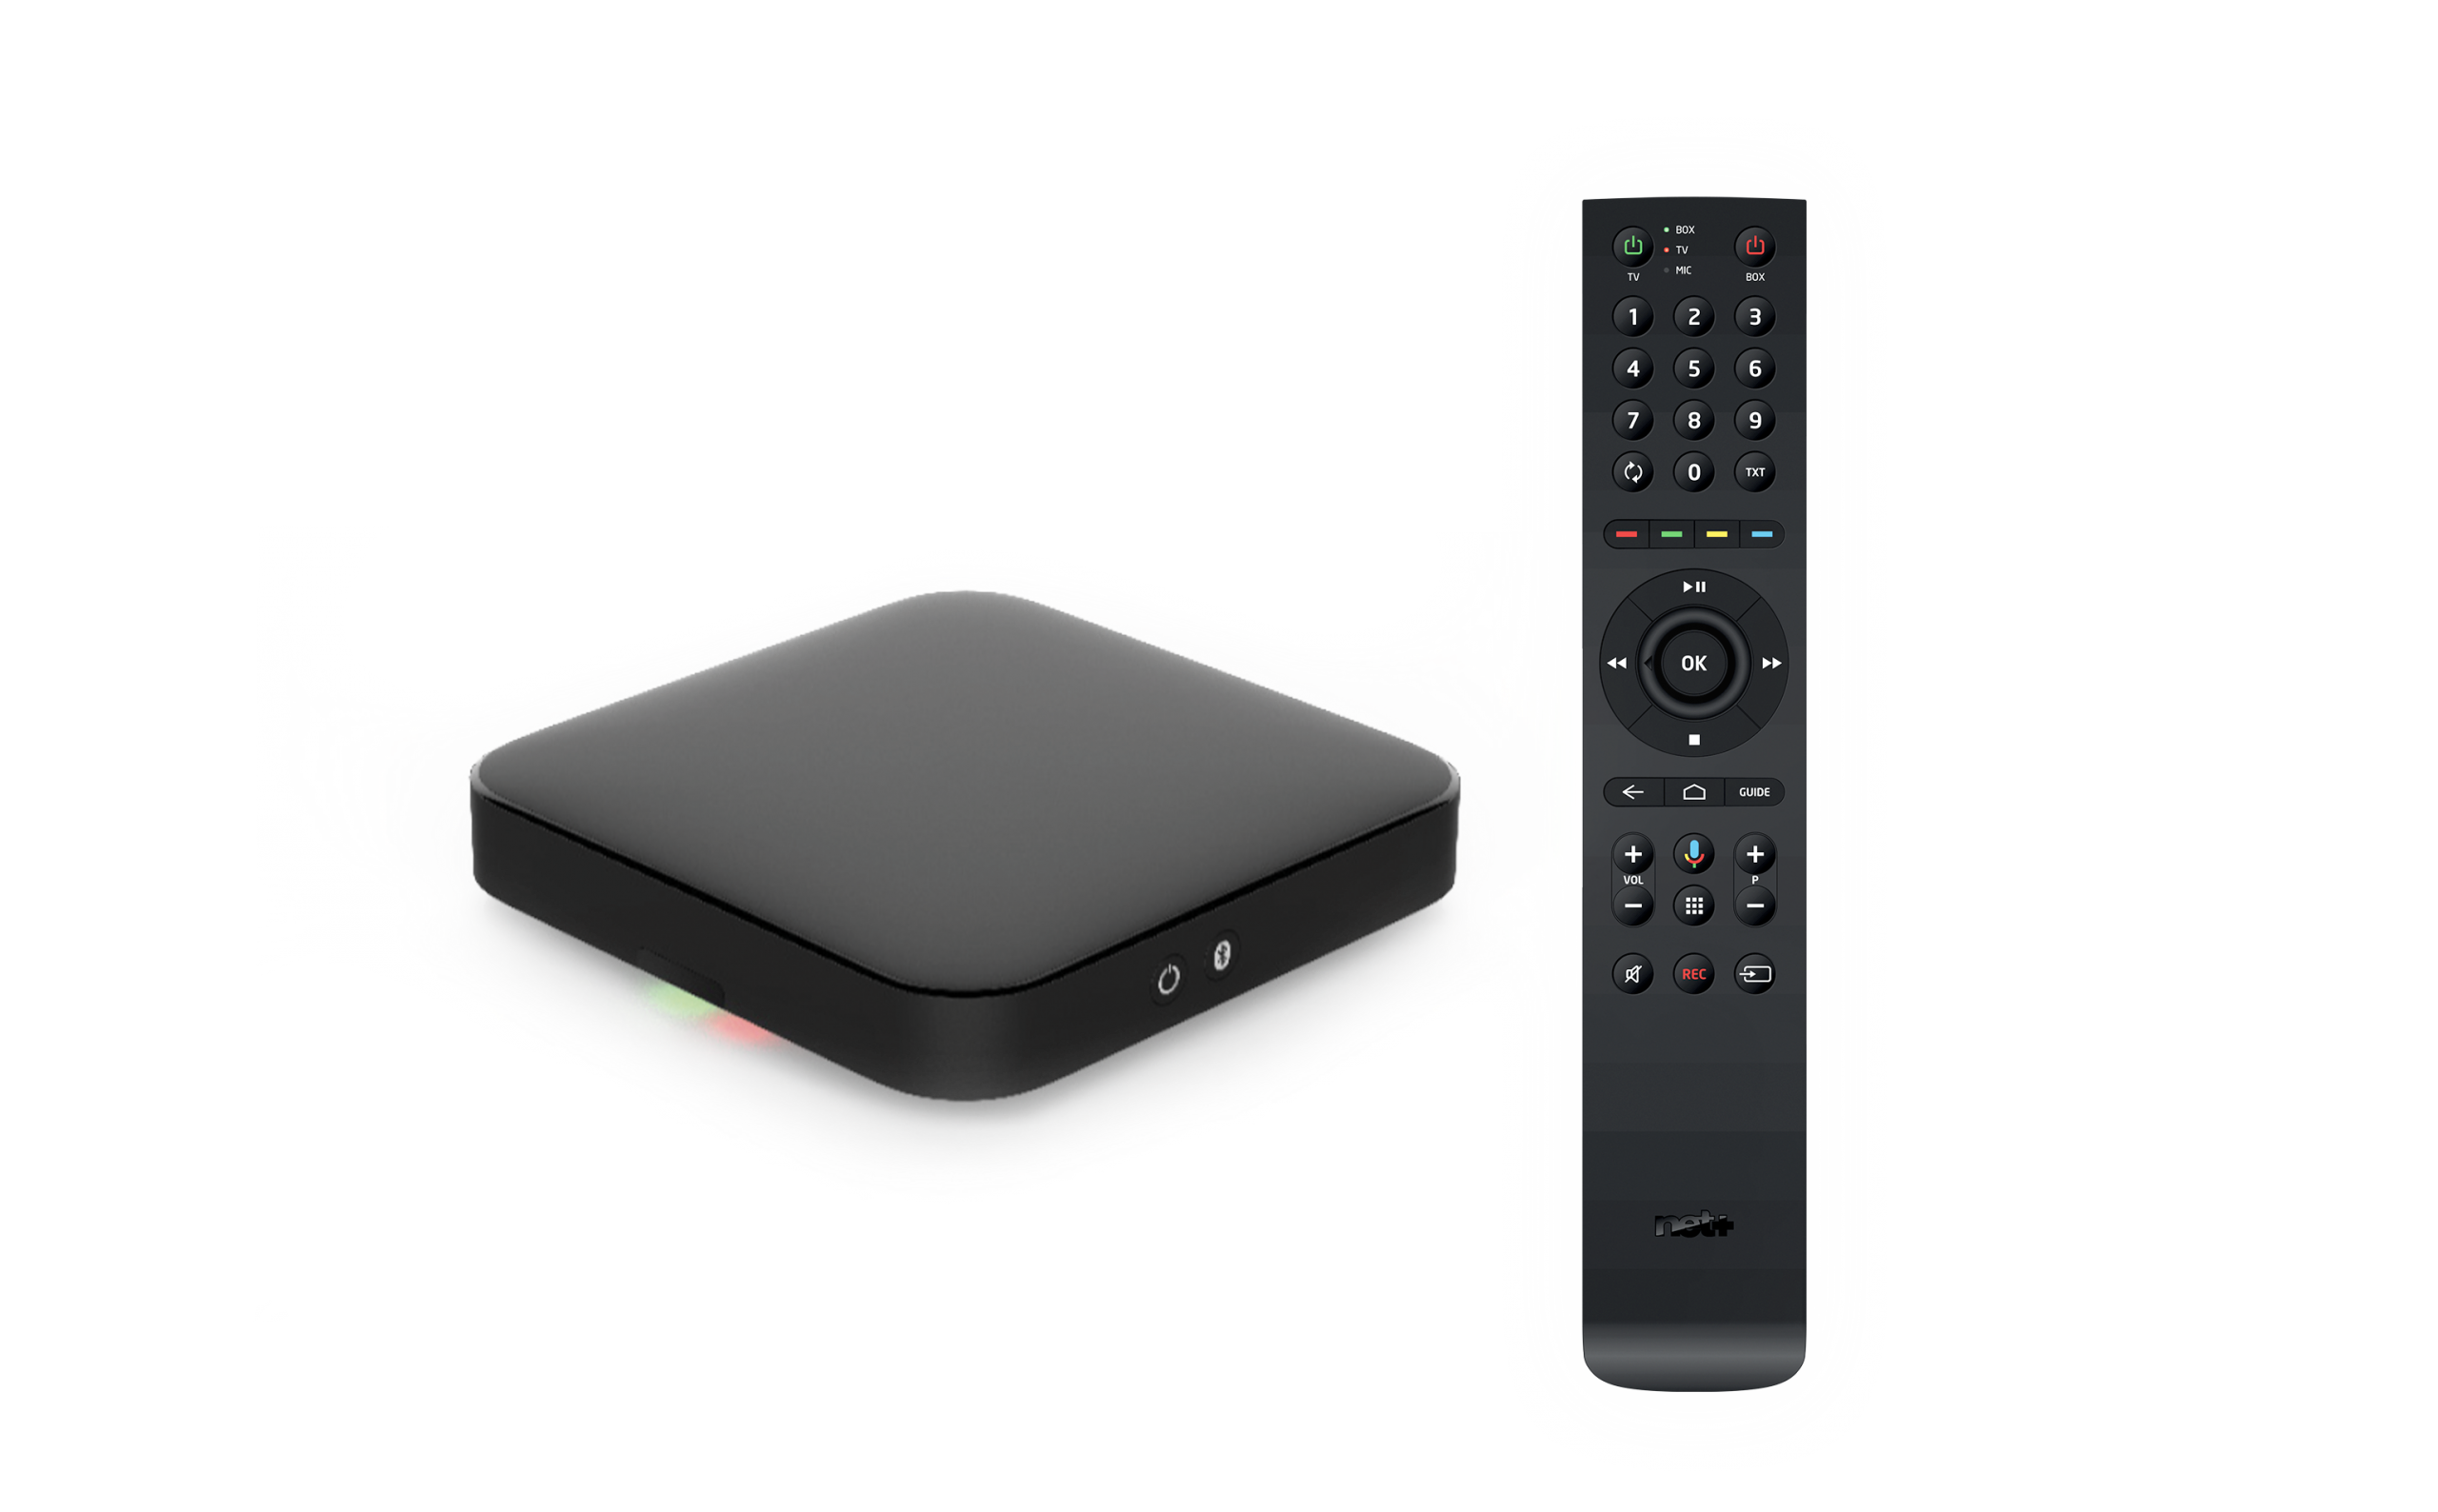 La Box by net+ propulsé par android TV